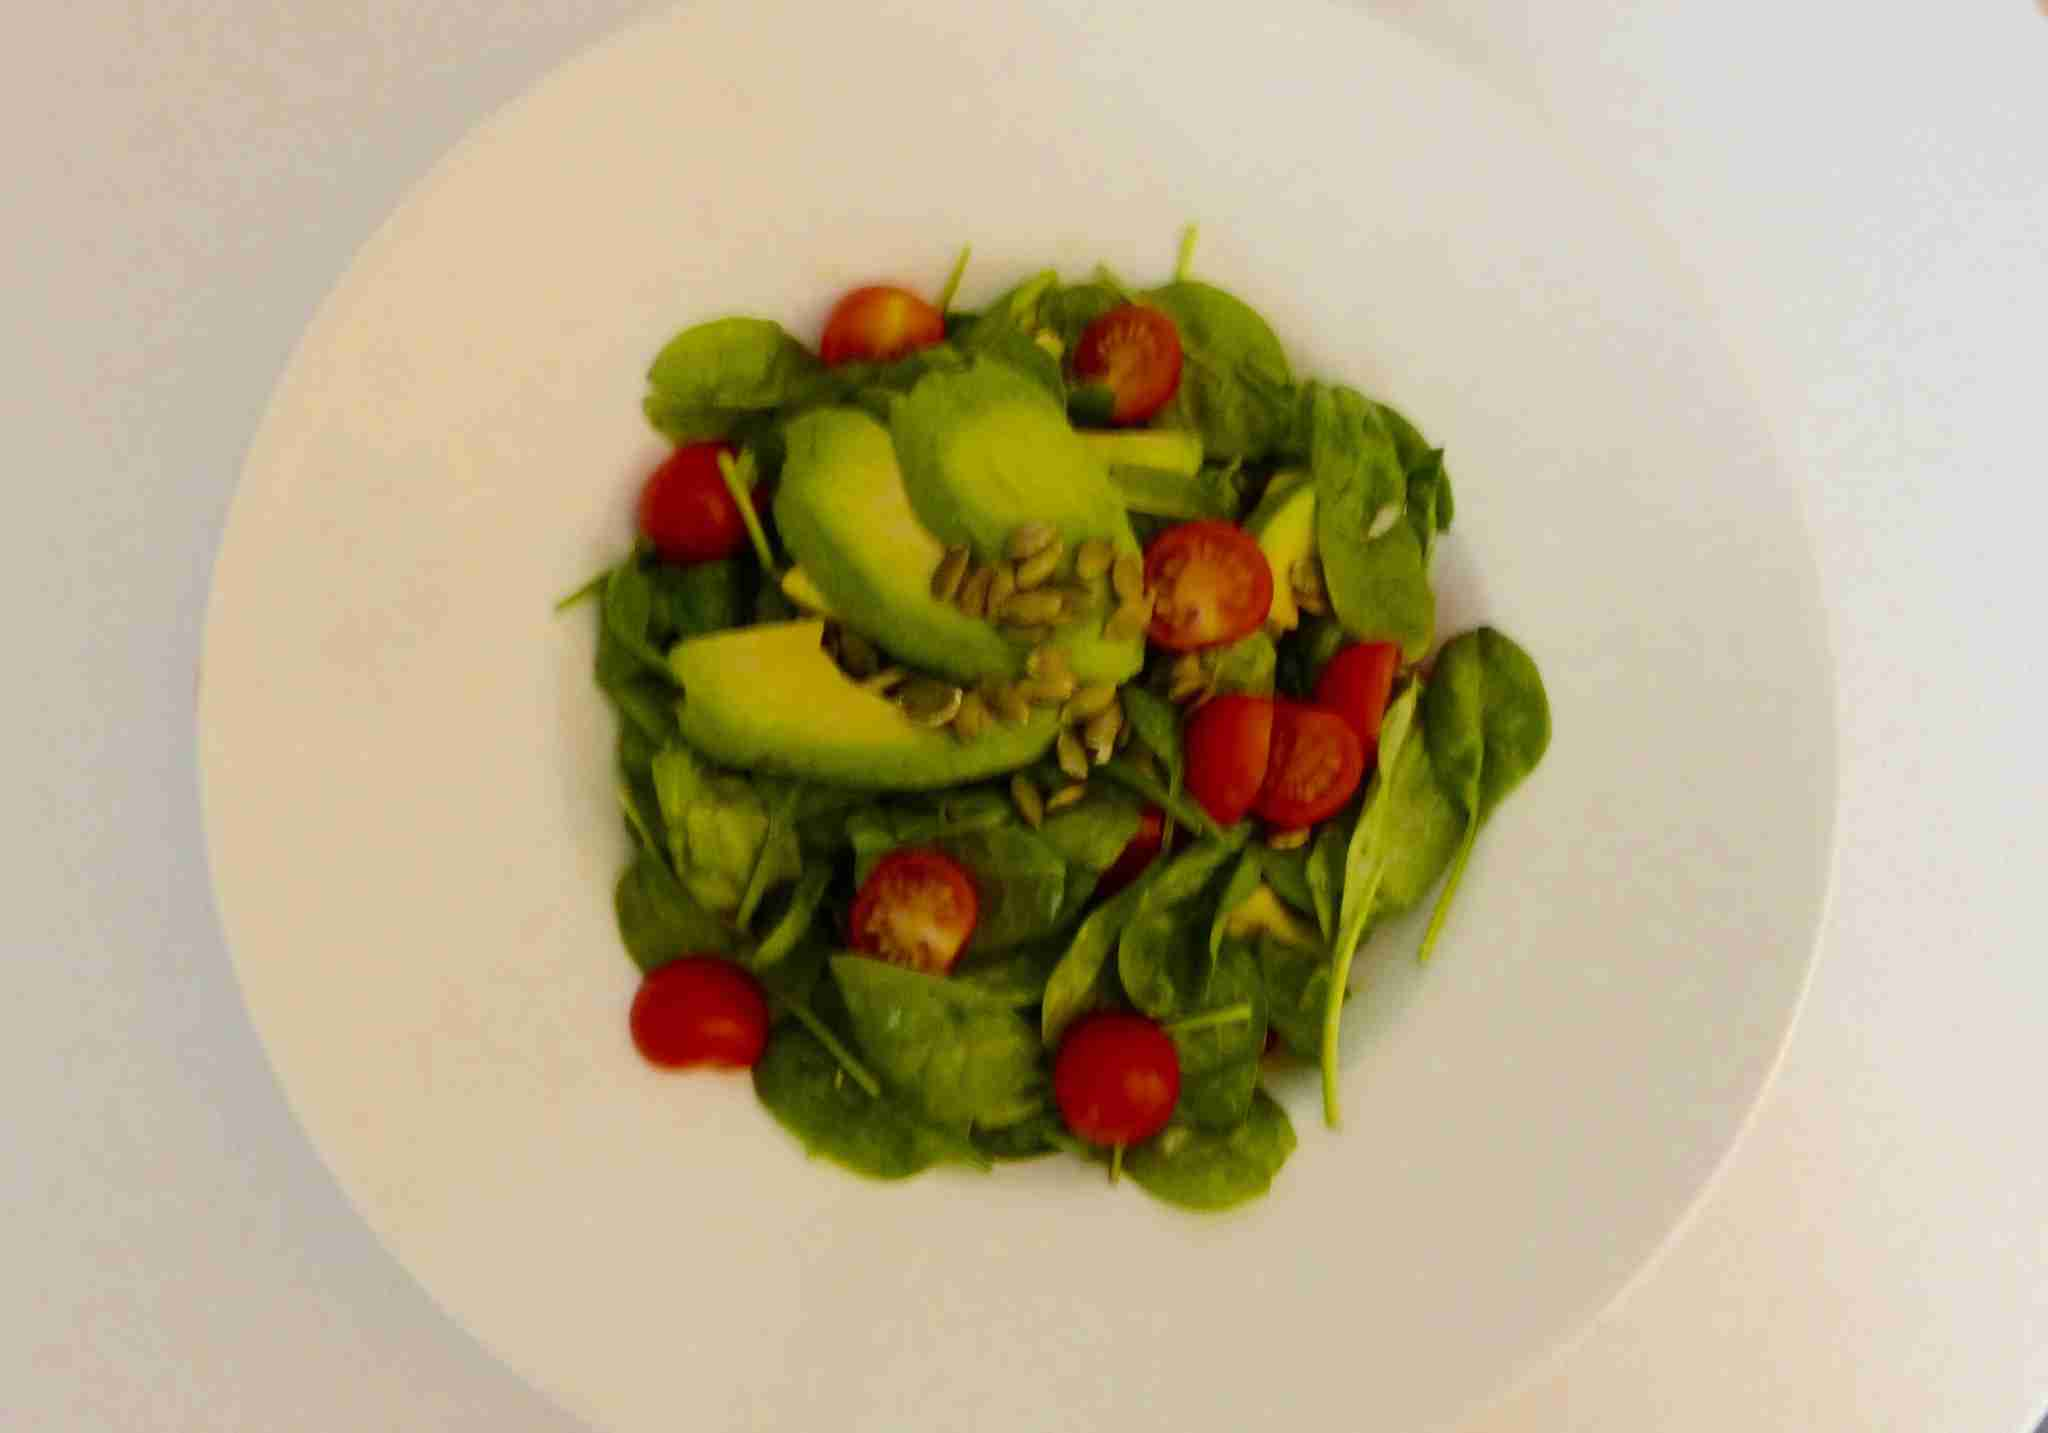 IMG-Edinburgh-Hilton-avacado-salad